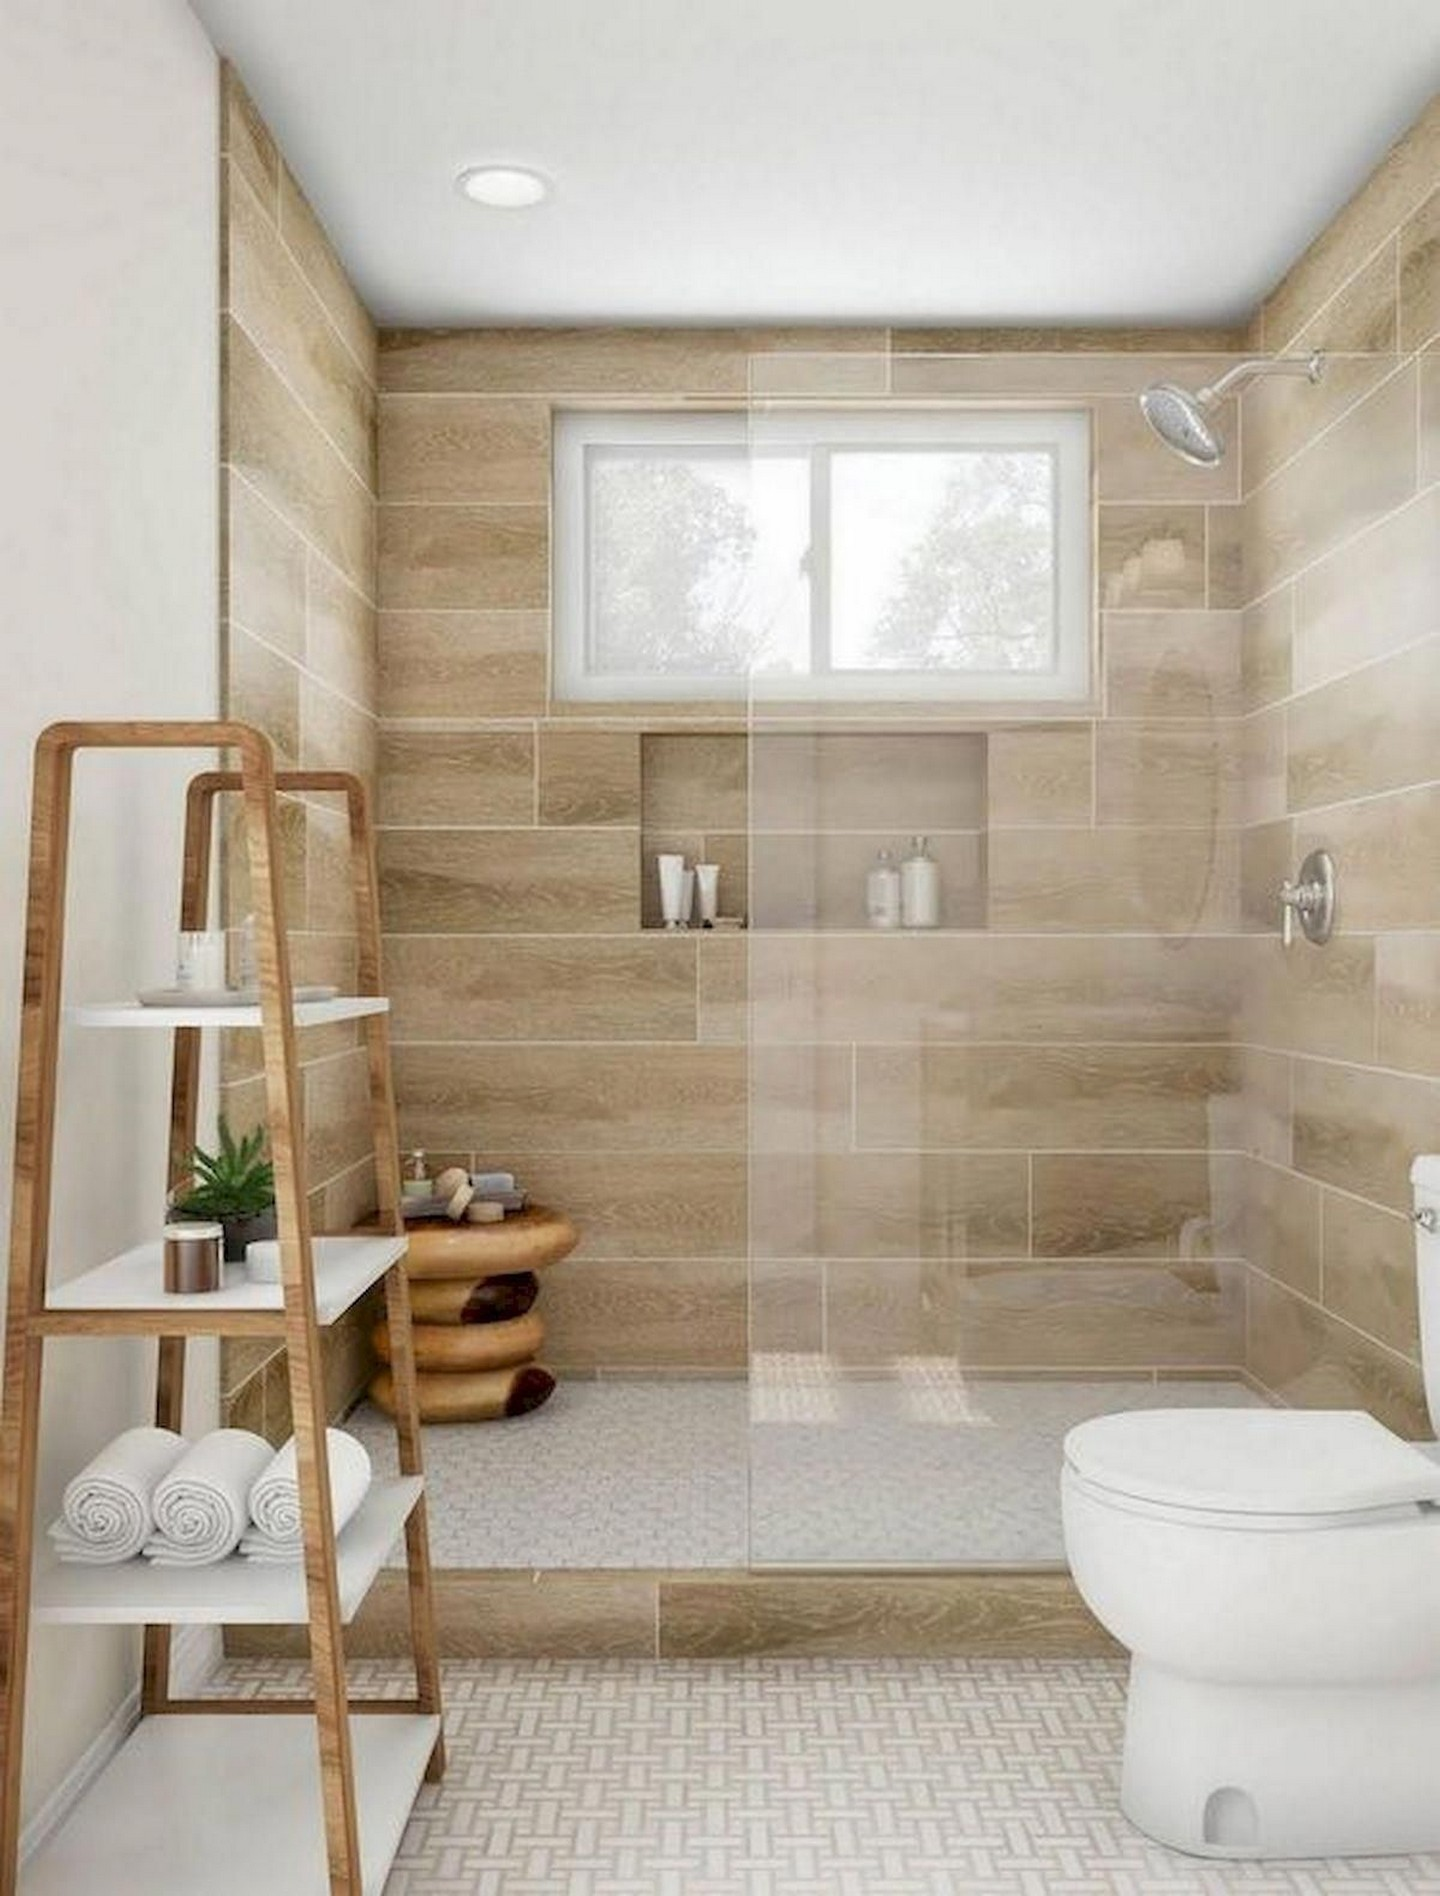 70 Master Bathroom Remodeling For Man and Woman Home Decor 11